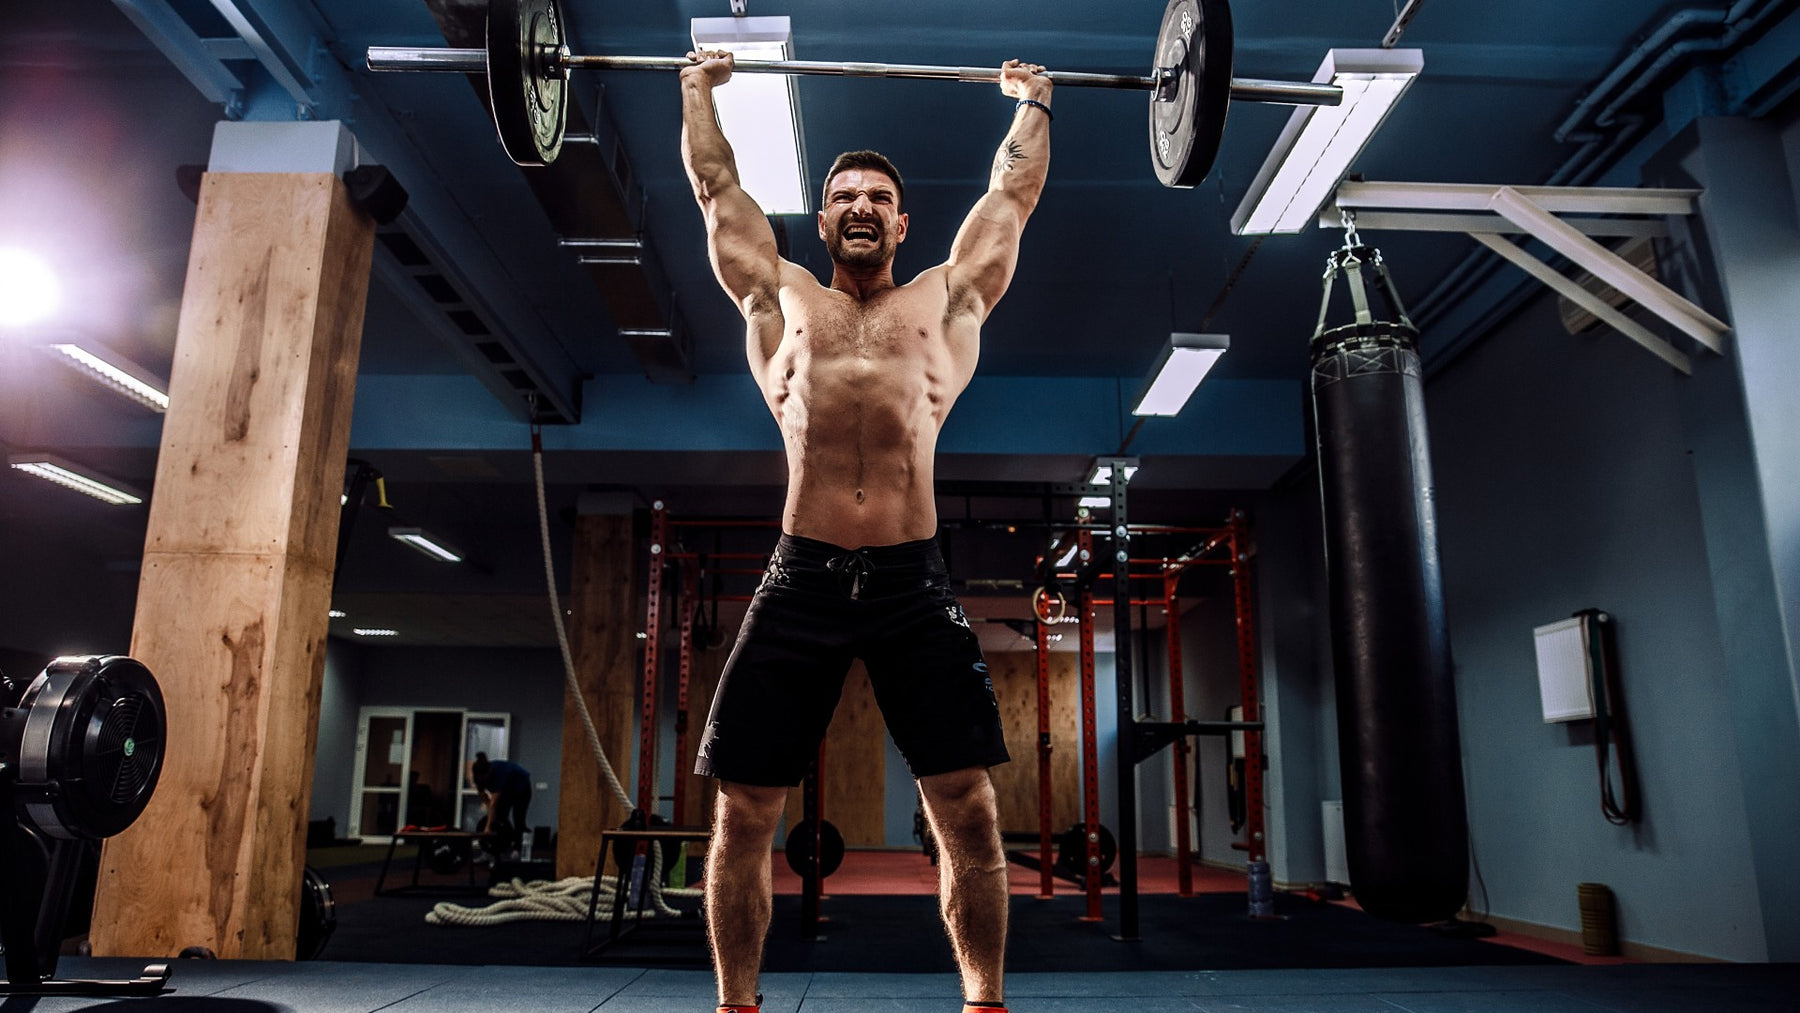 Use Barbell Complexes to Burn Fat and Build Muscle